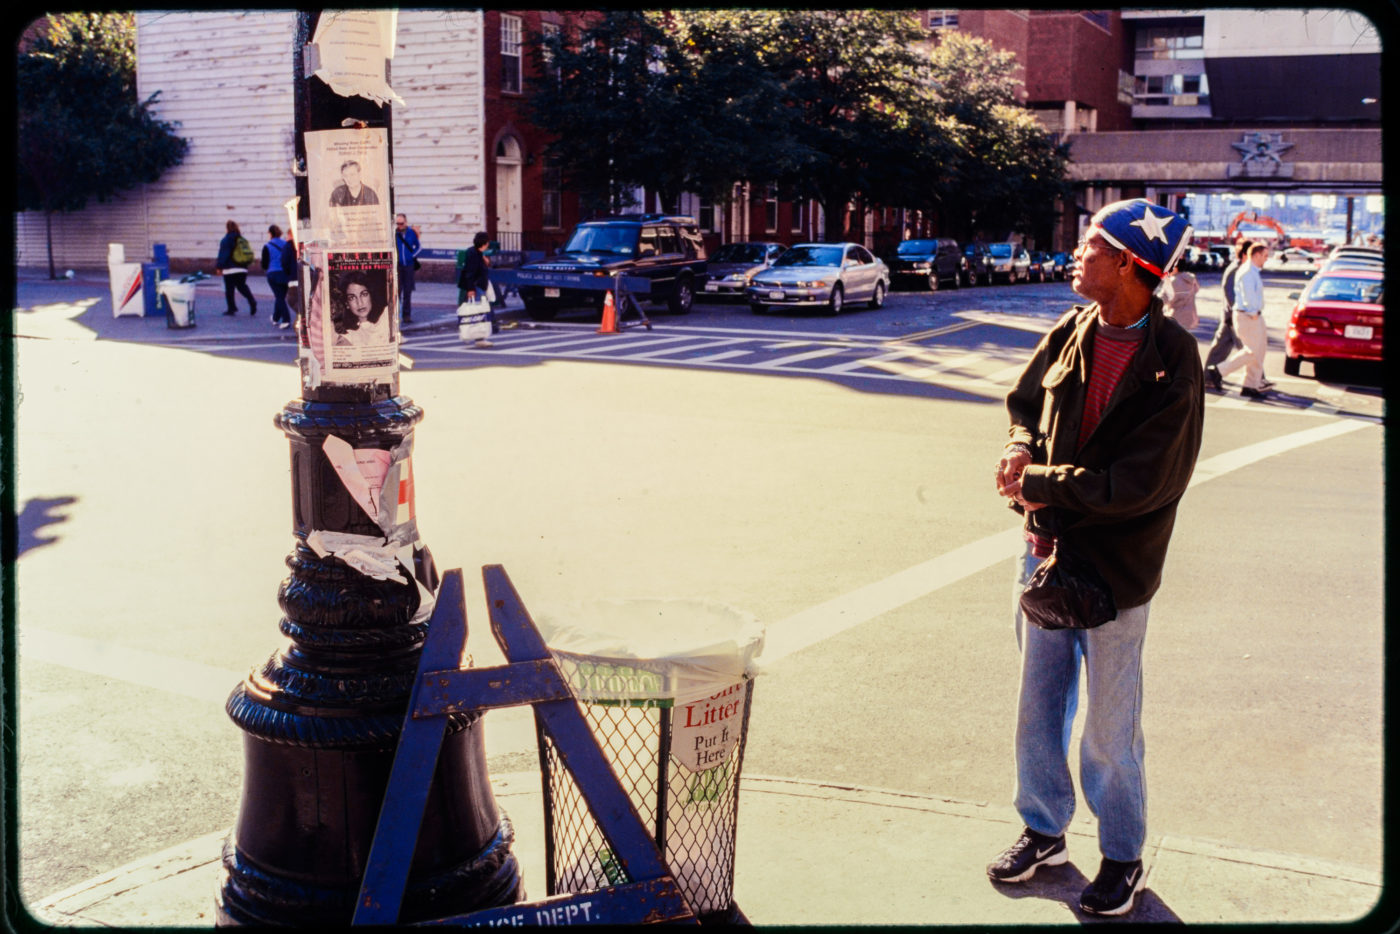 An Individual Pauses by Memorial and Missing Persons Lightpost at the Corner of Harrison and Greenwich Streets.jpg